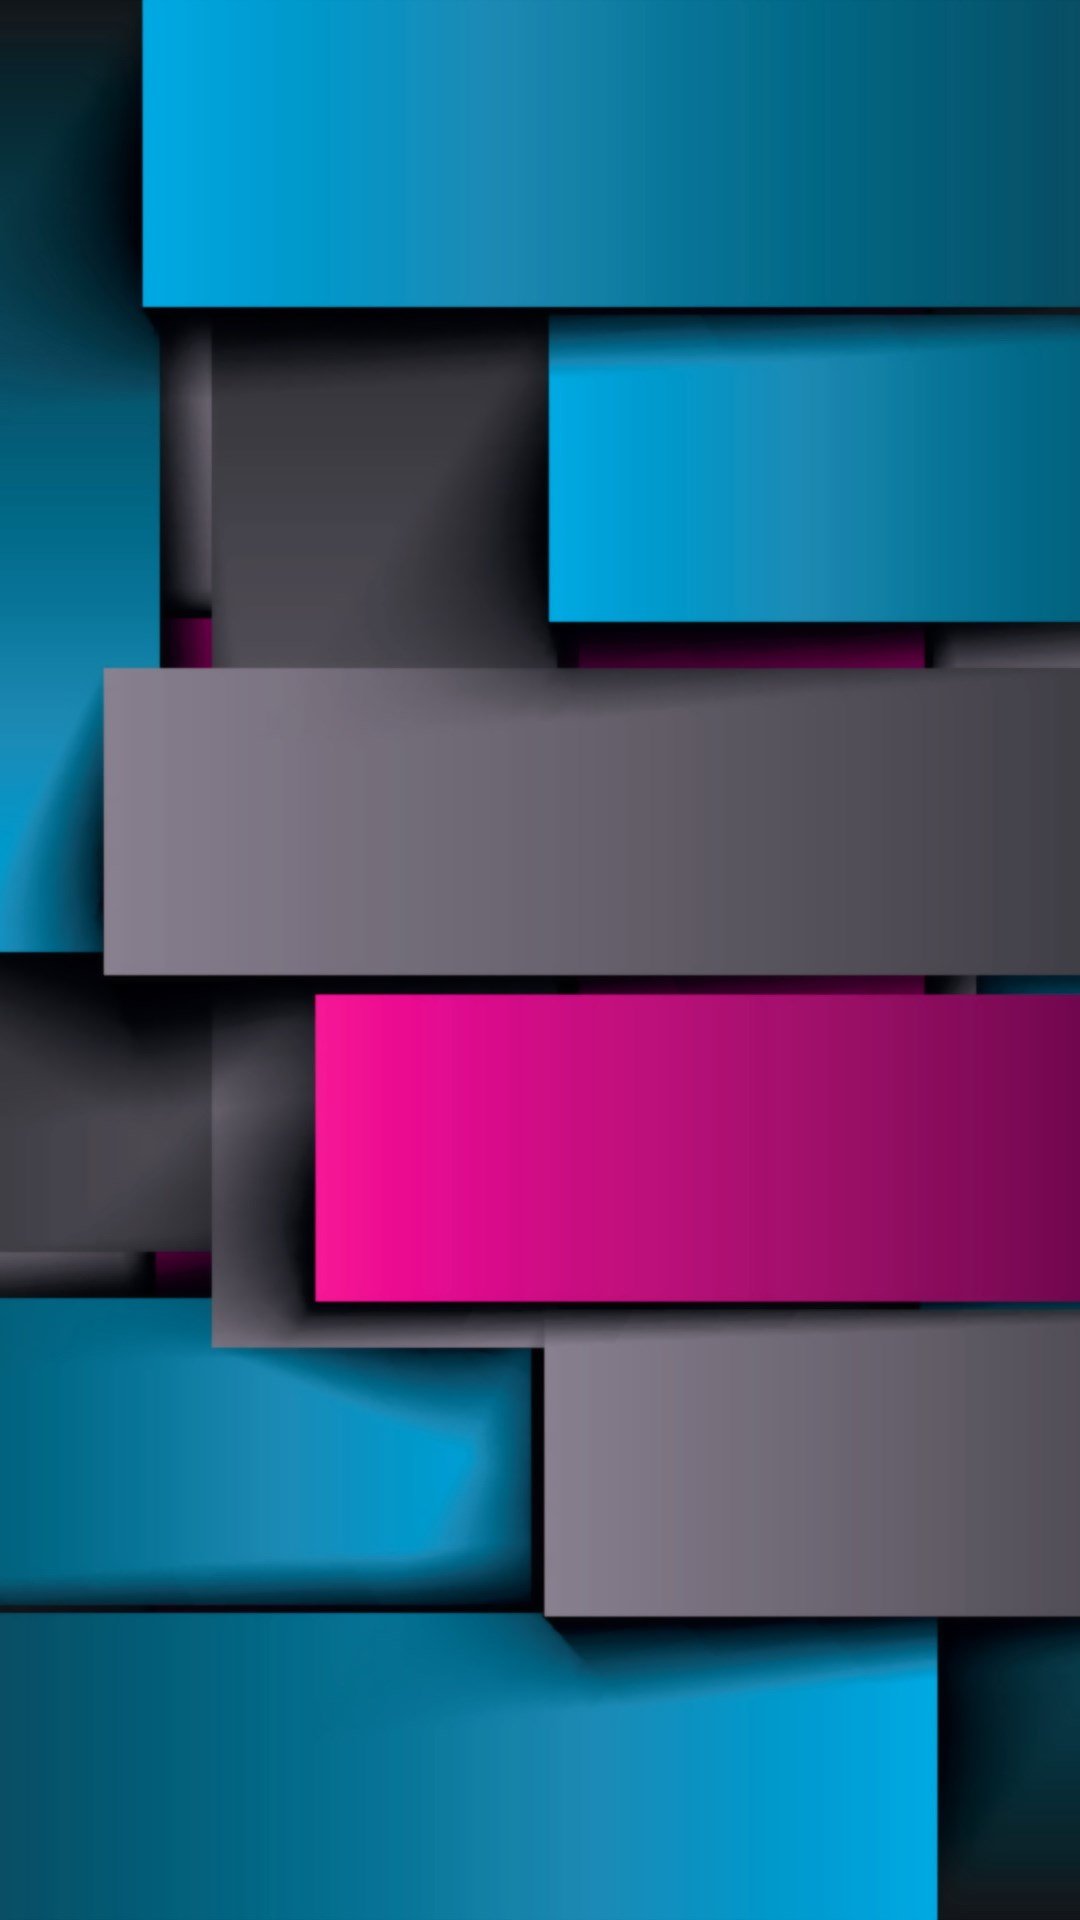 blue pink grey material background 1080x1920